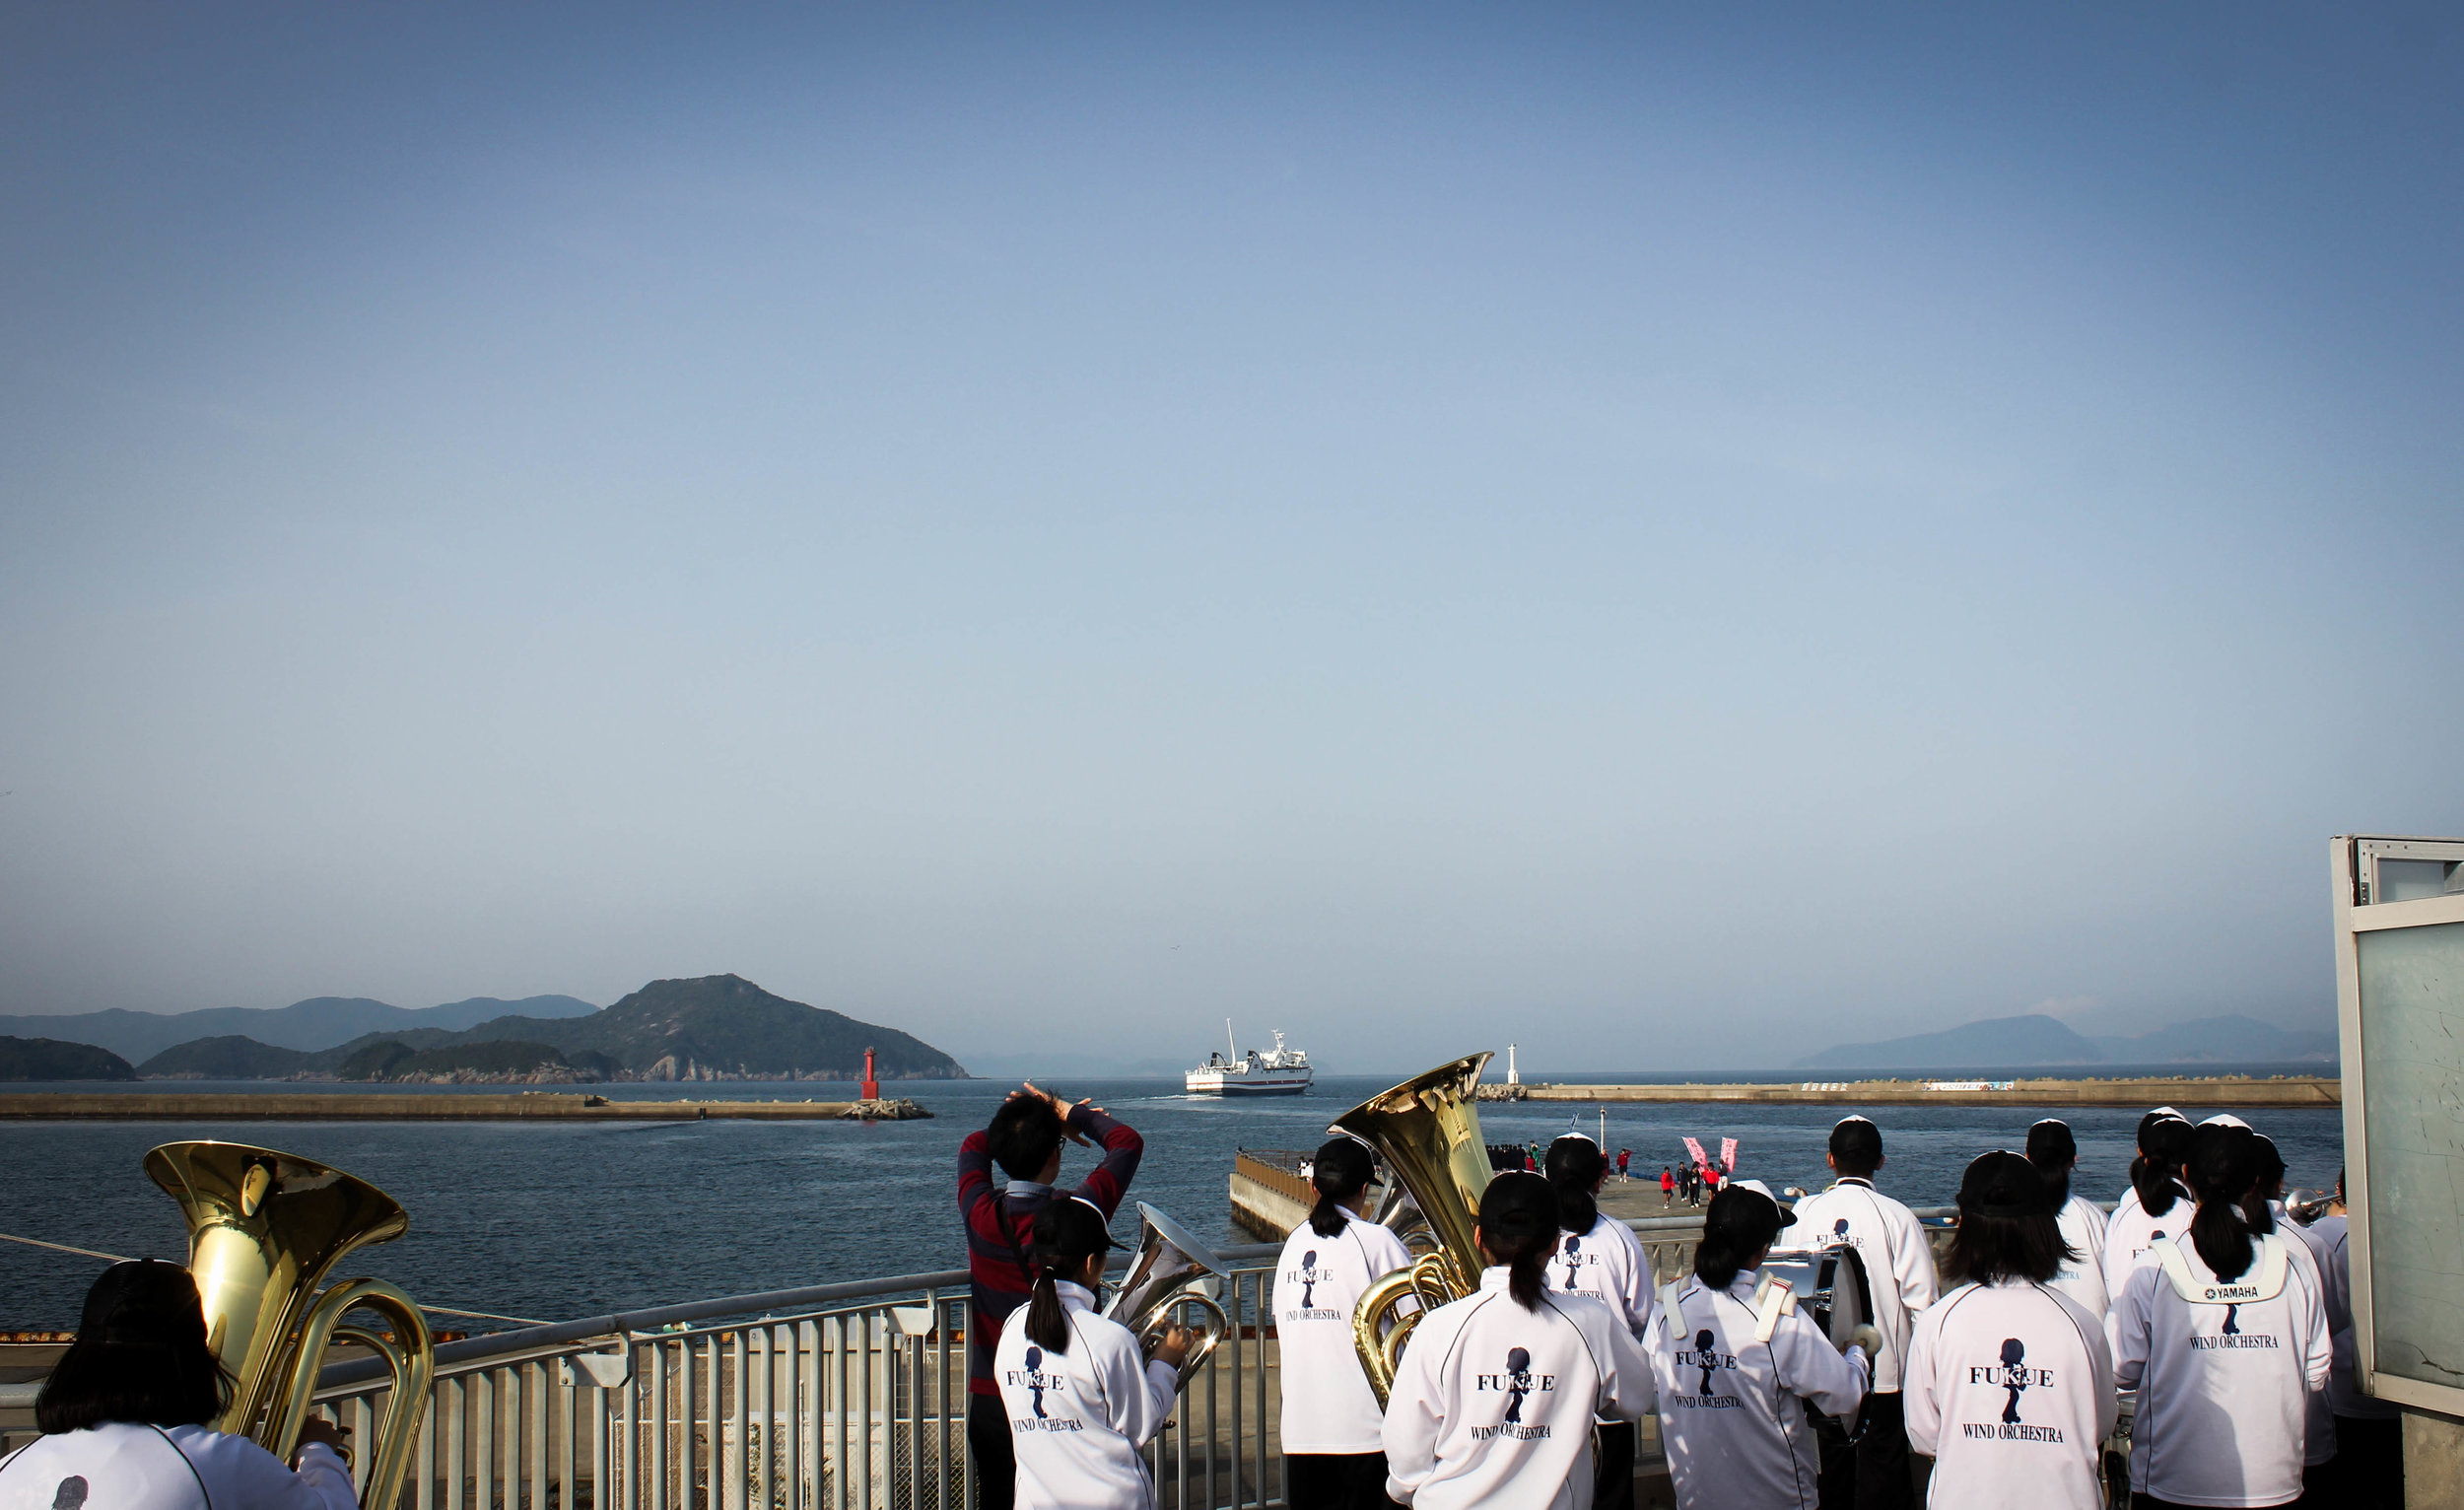 The Fukue Junior High School band set up on top of a lookout point and playing the ferry out until it is out of sight. I stood behind, silently weeping lol.